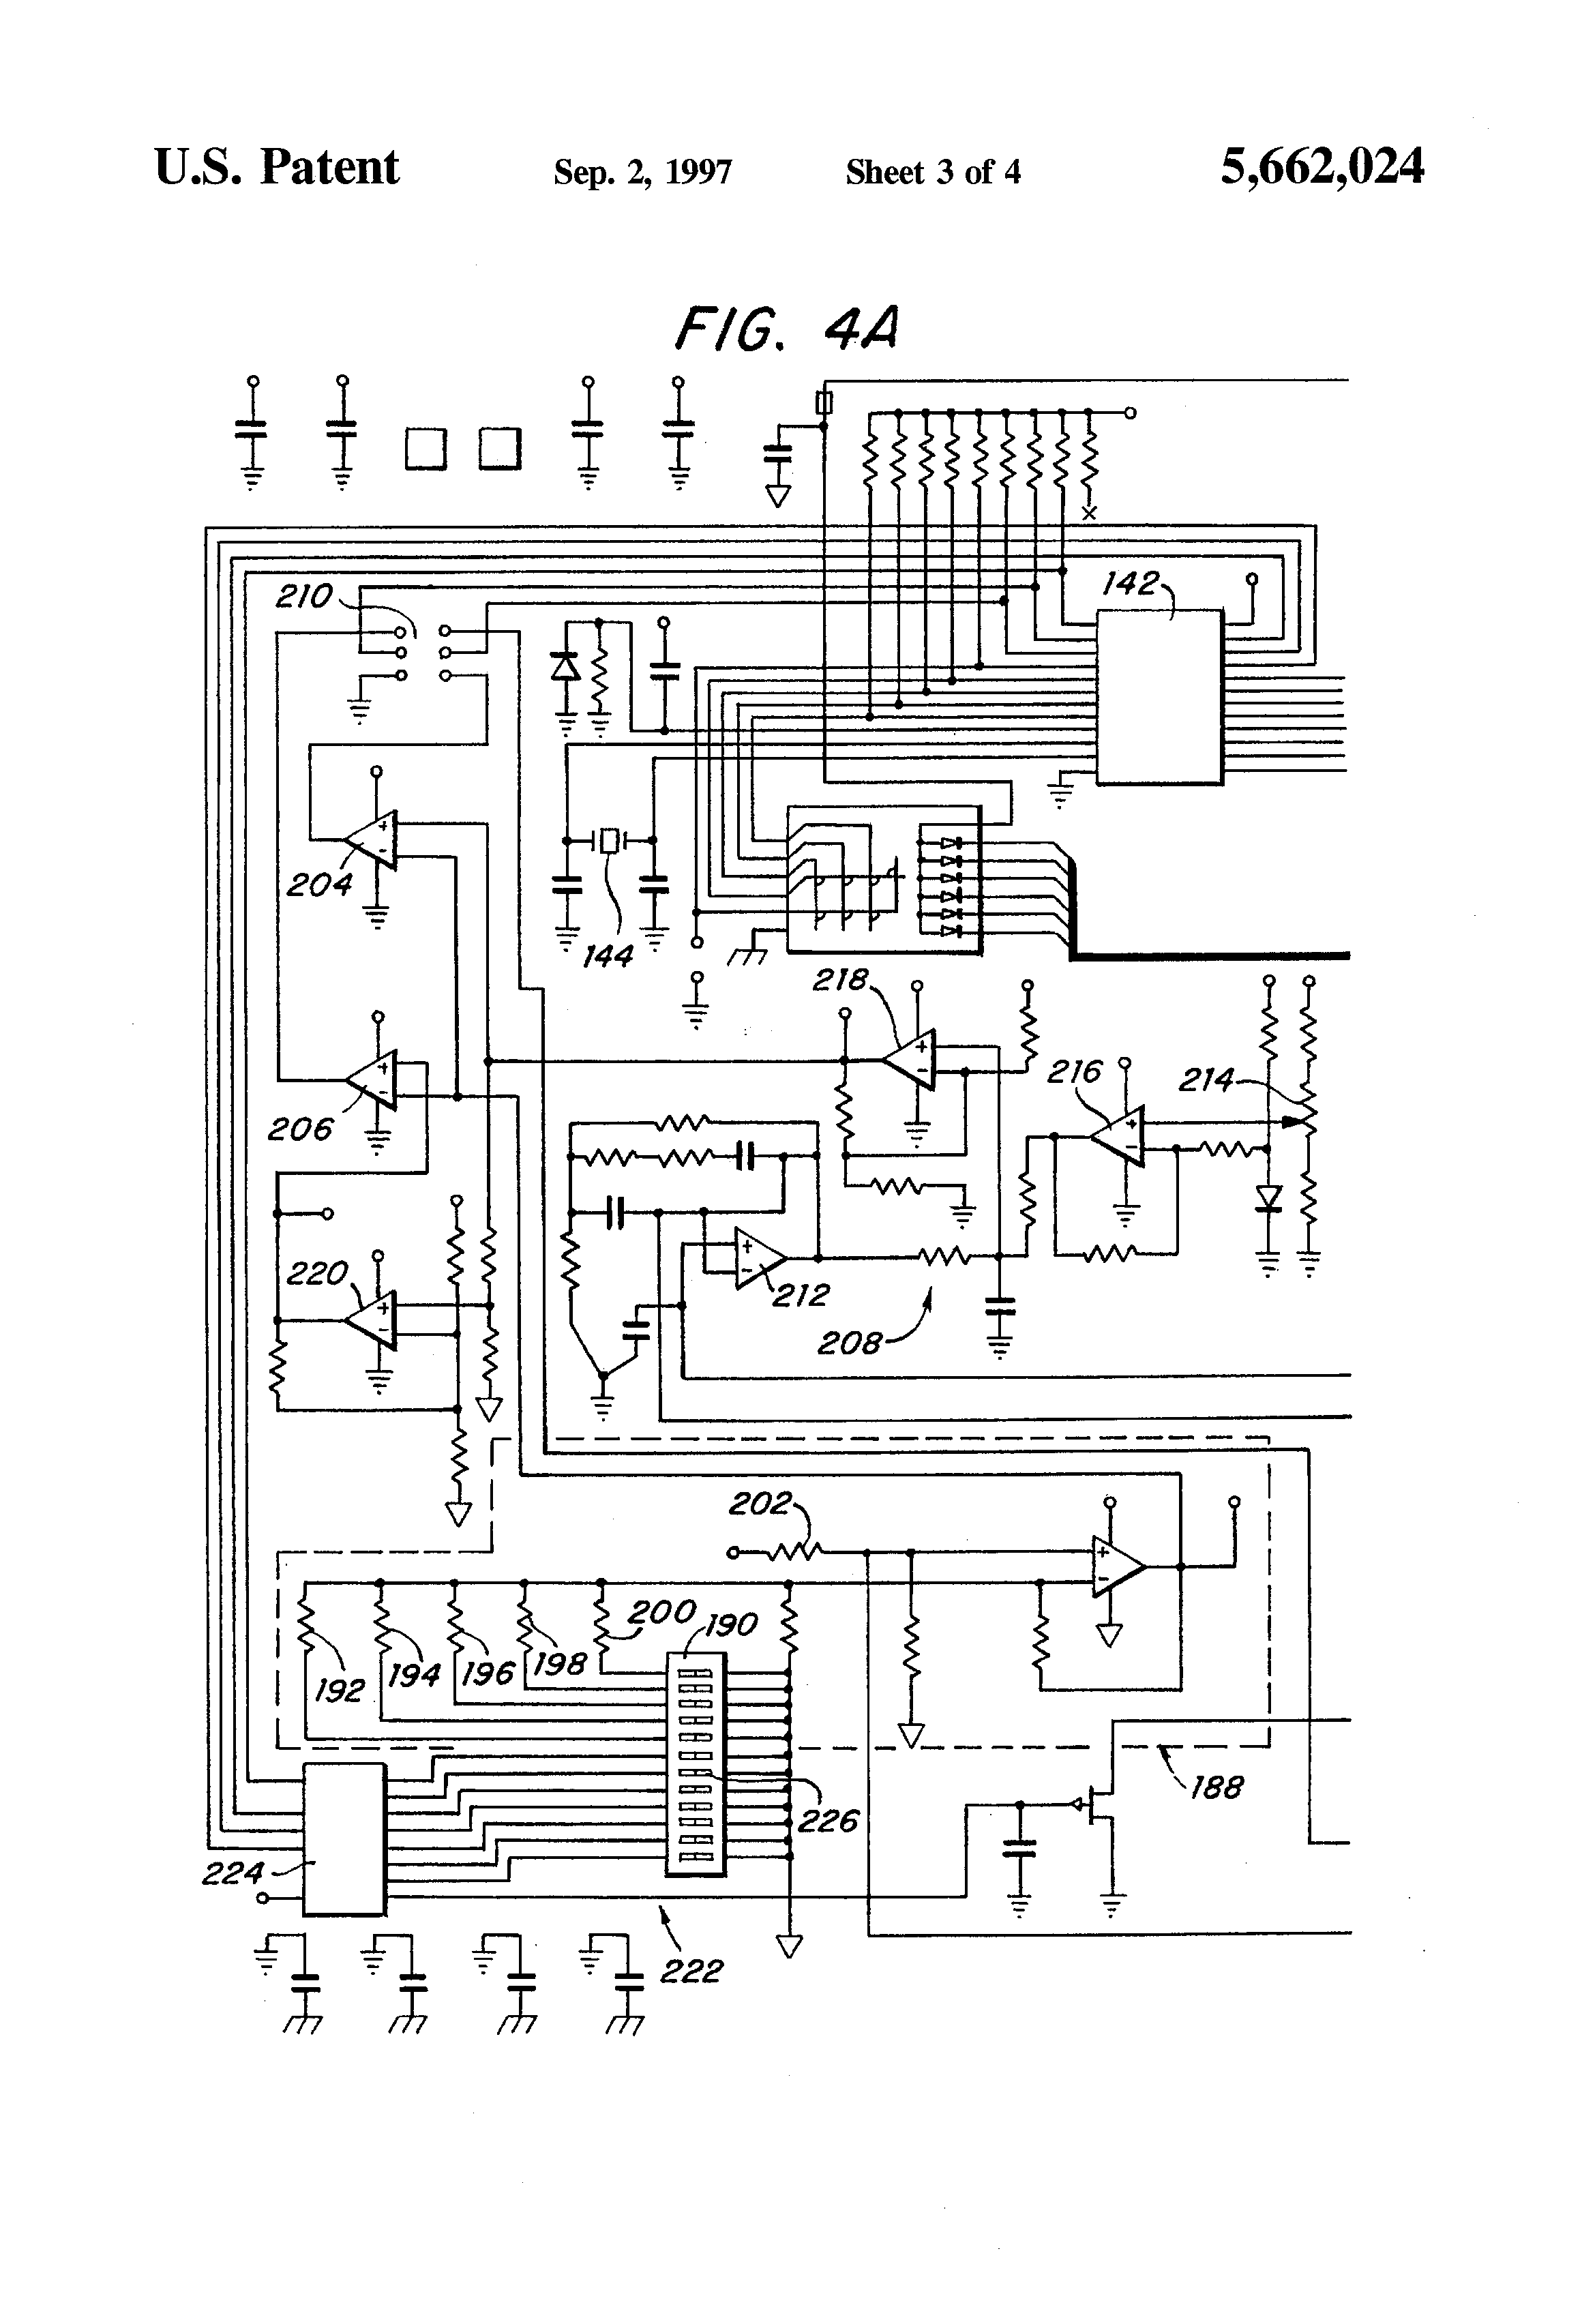 for popcorn machine wiring diagrams basic wiring diagram u2022 rh rnetcomputer co Audio Circuit Diagram Maker Circuit Schematics